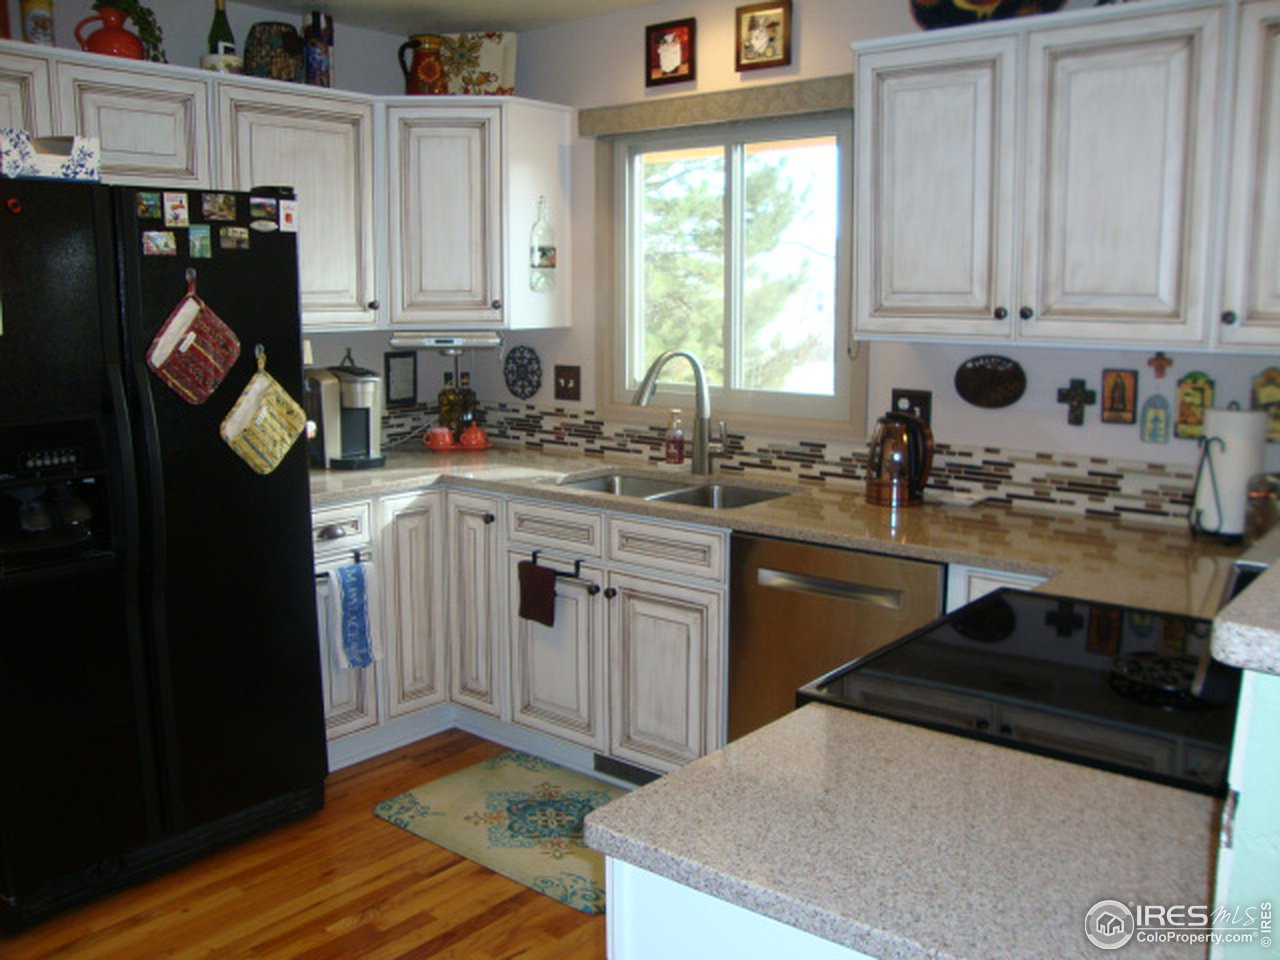 Great kitchen with lots of light